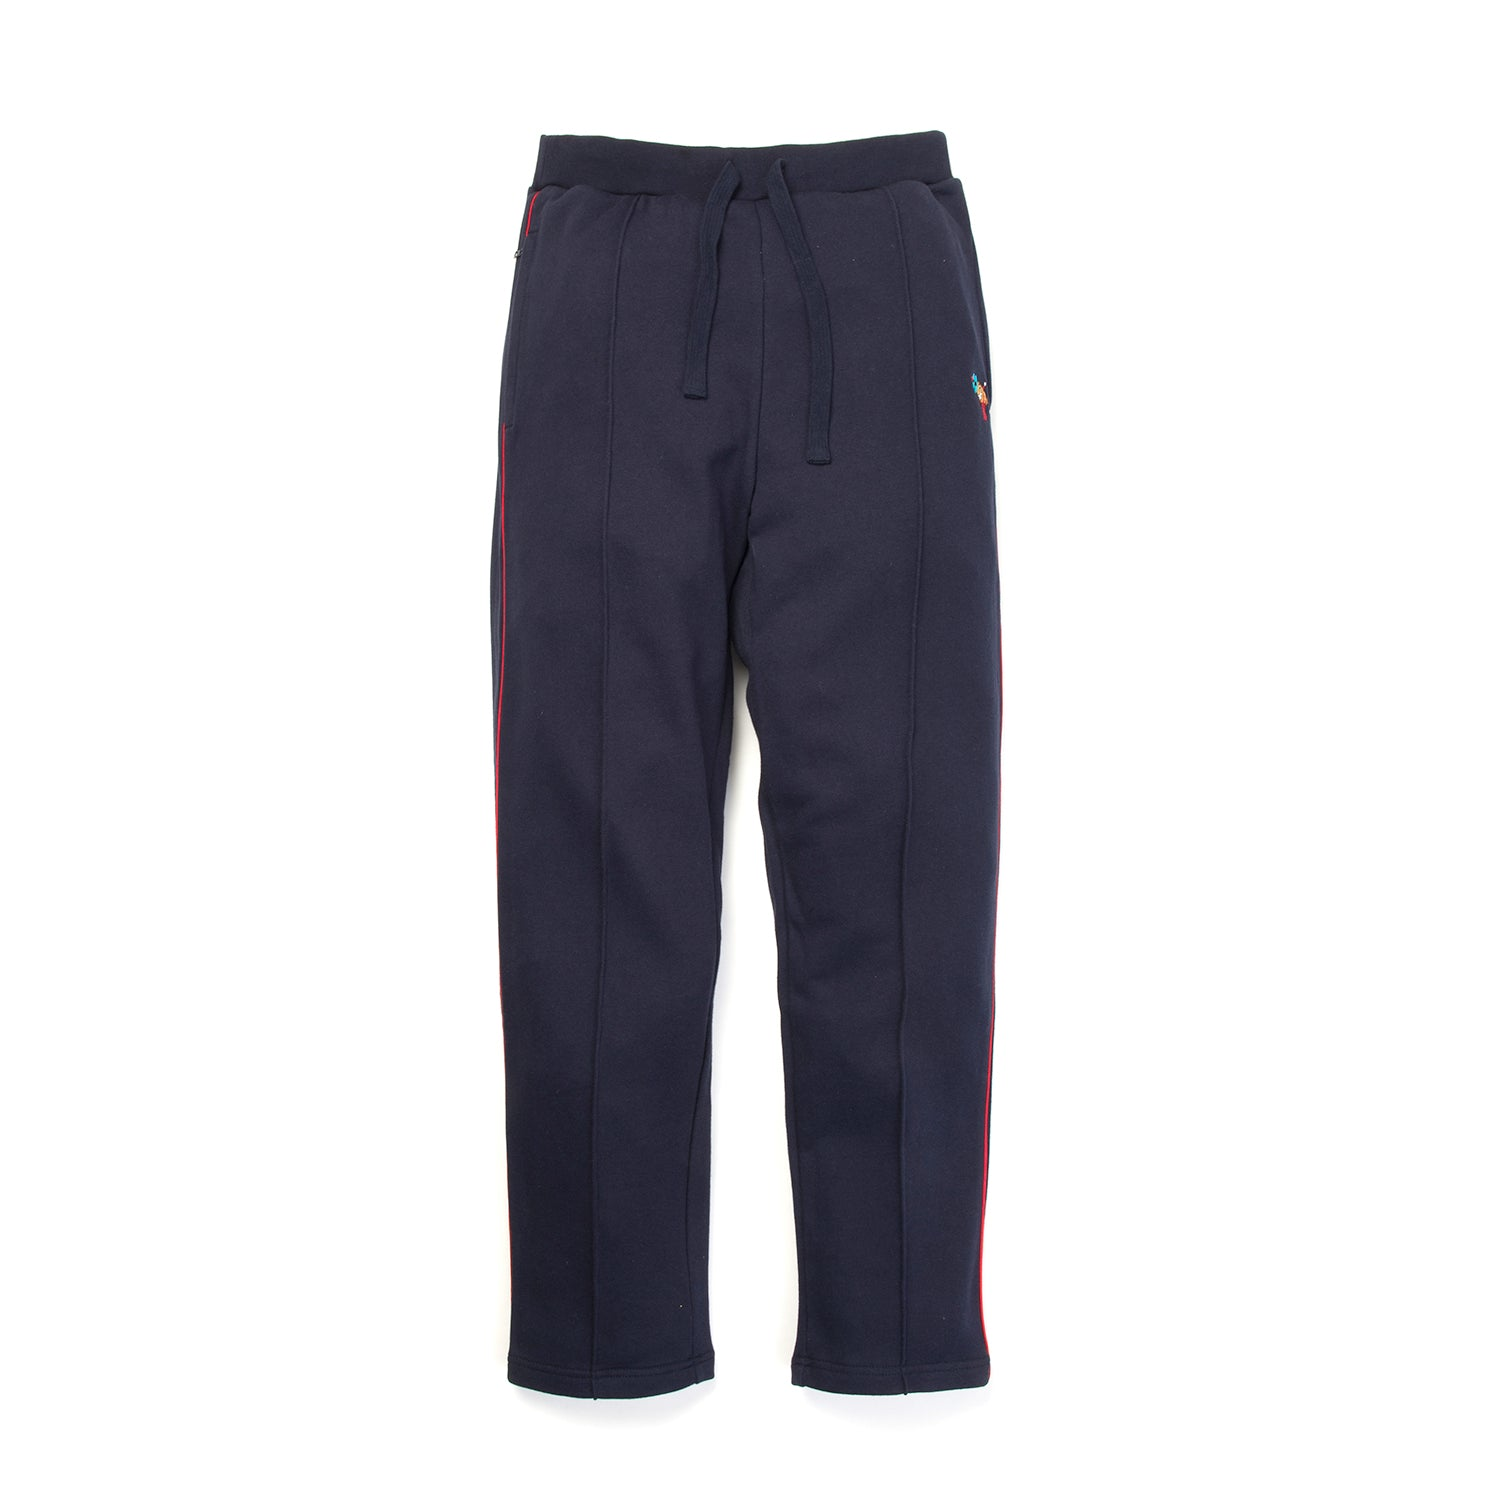 BBC Raygun Pleated Sweatpant Navy